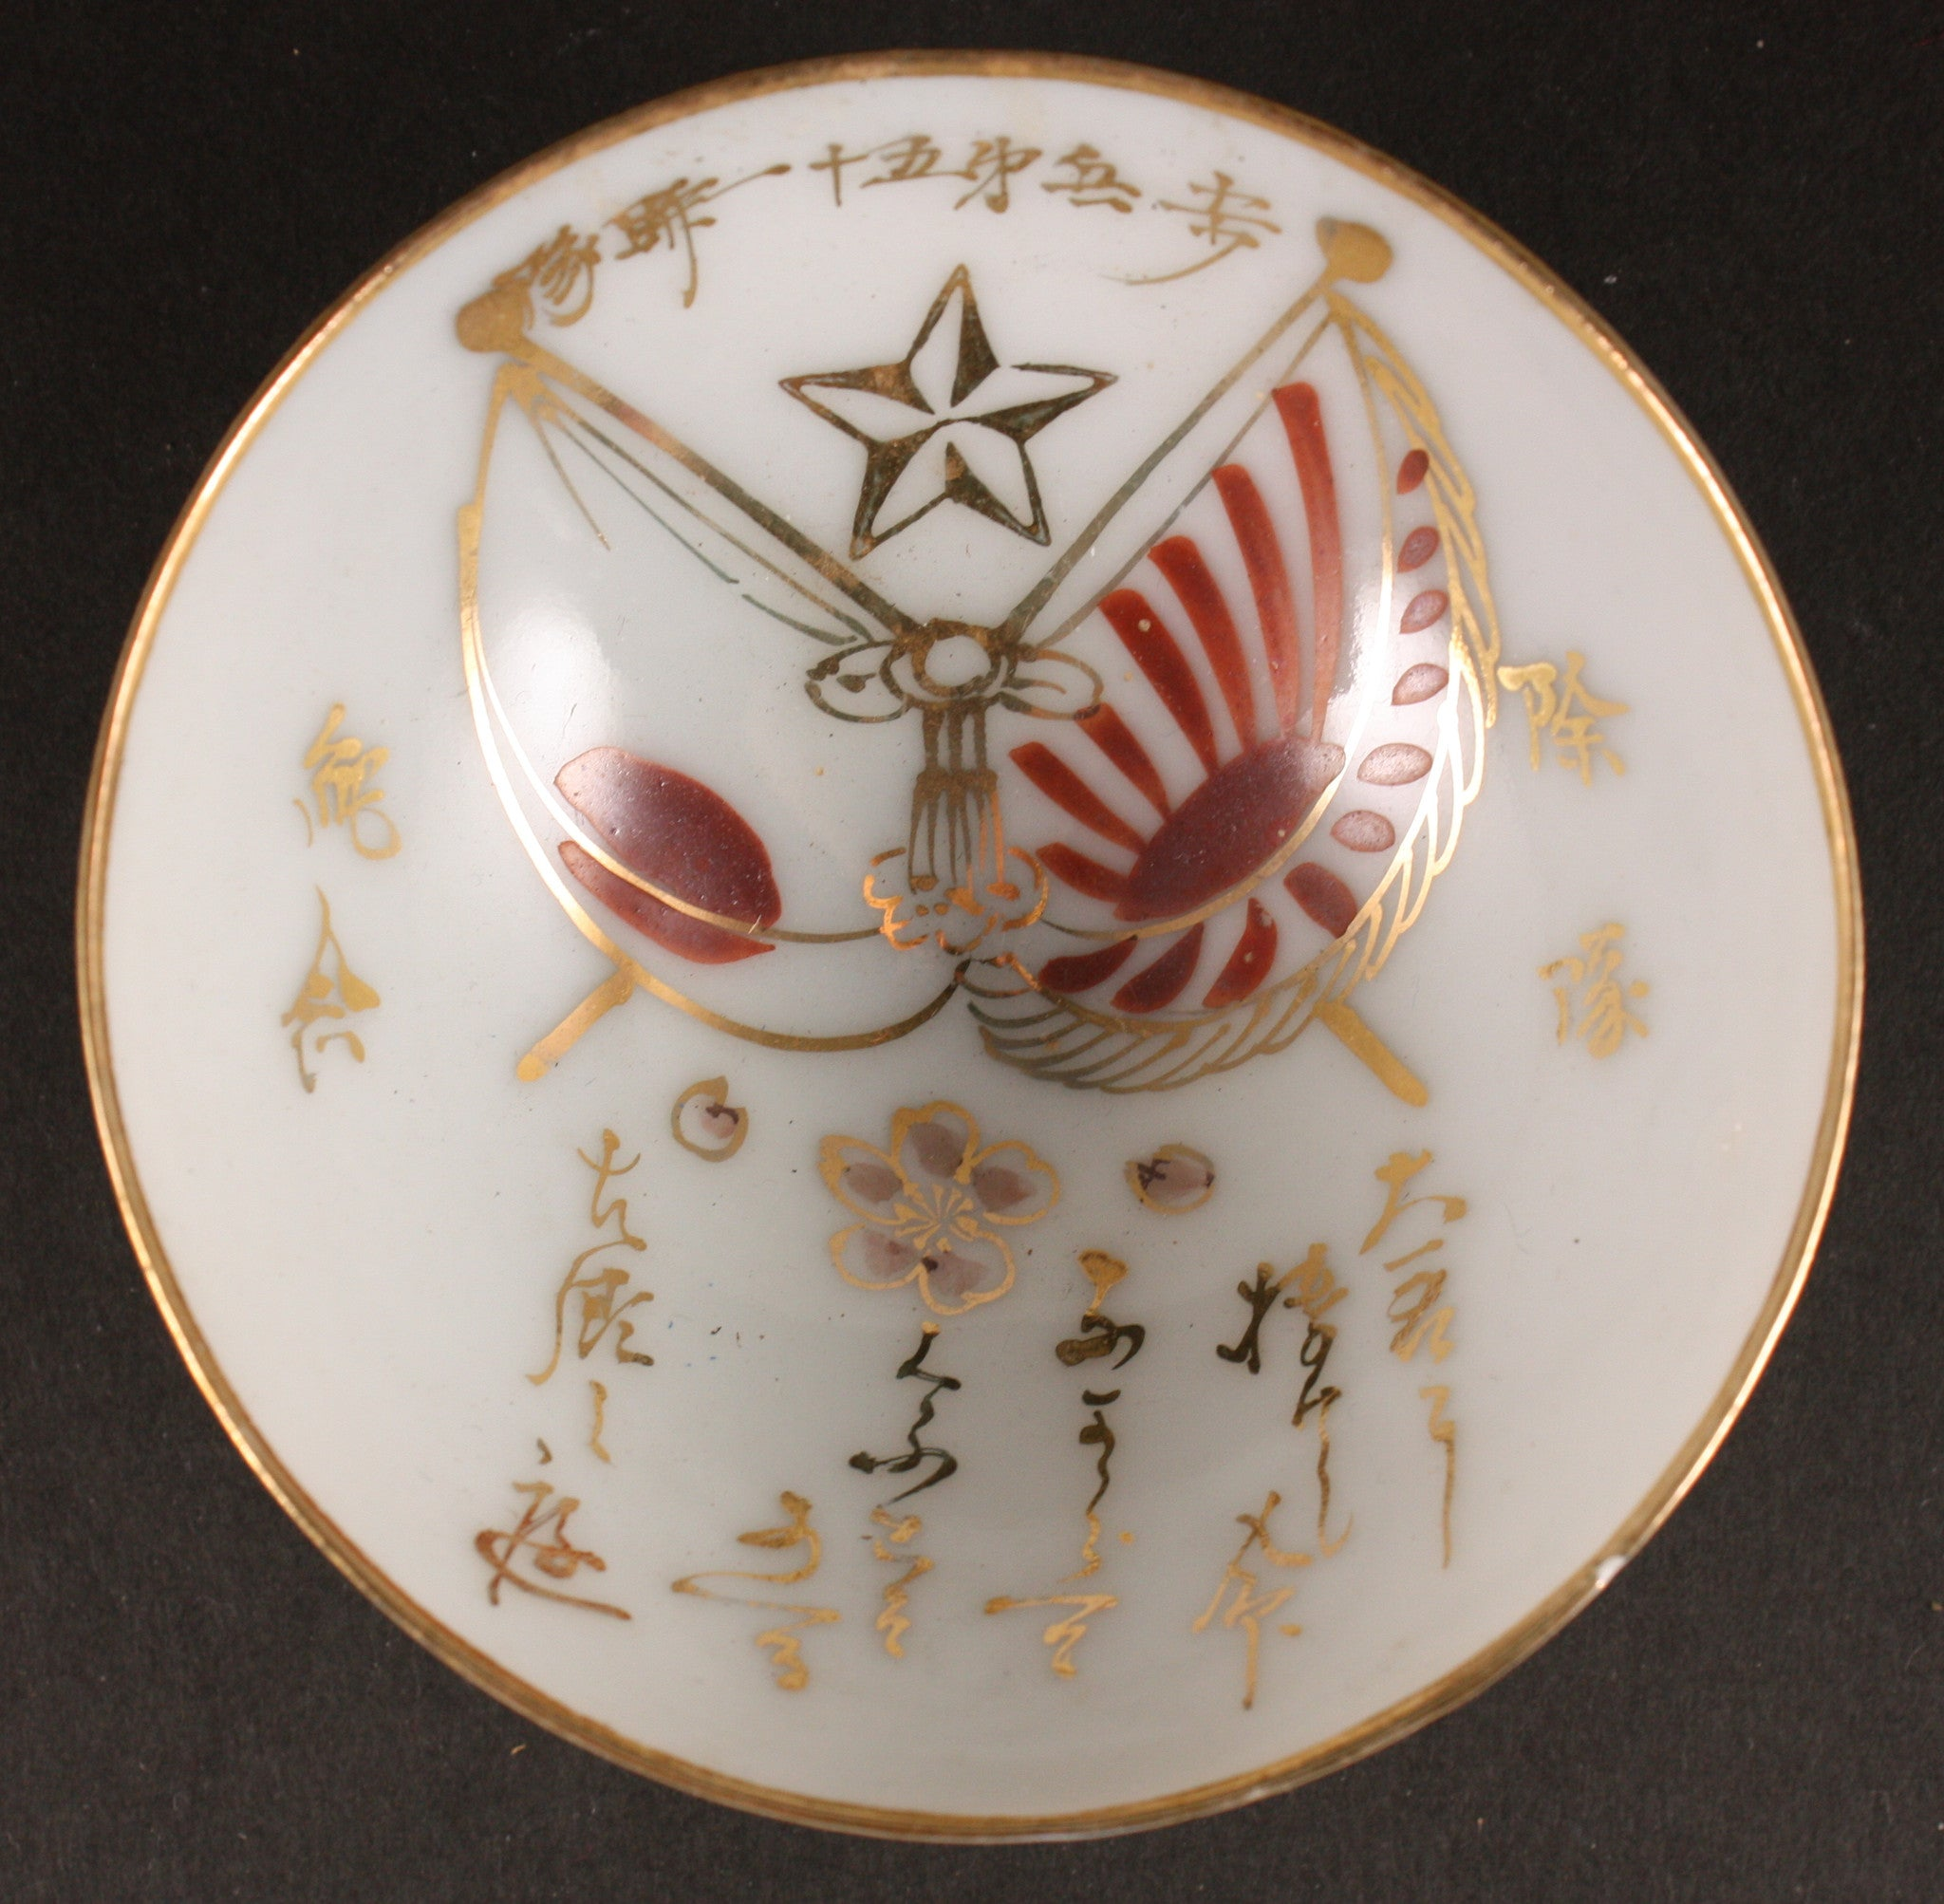 Antique Japanese Military Flags Star Poem Infantry Army Sake Cup